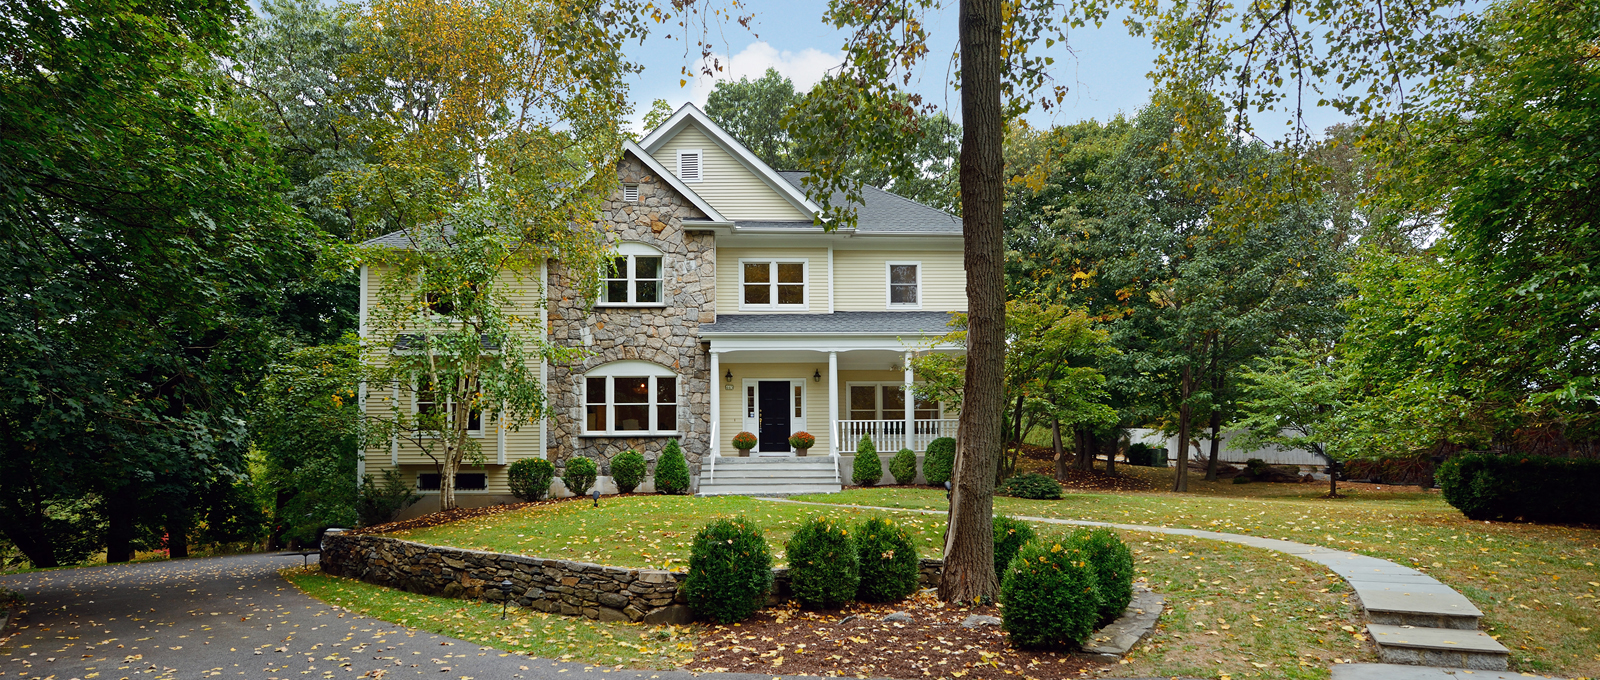 Single Family Home for Sale at Inviting Colonial 445 Grace Church Street Rye, New York 10580 United States